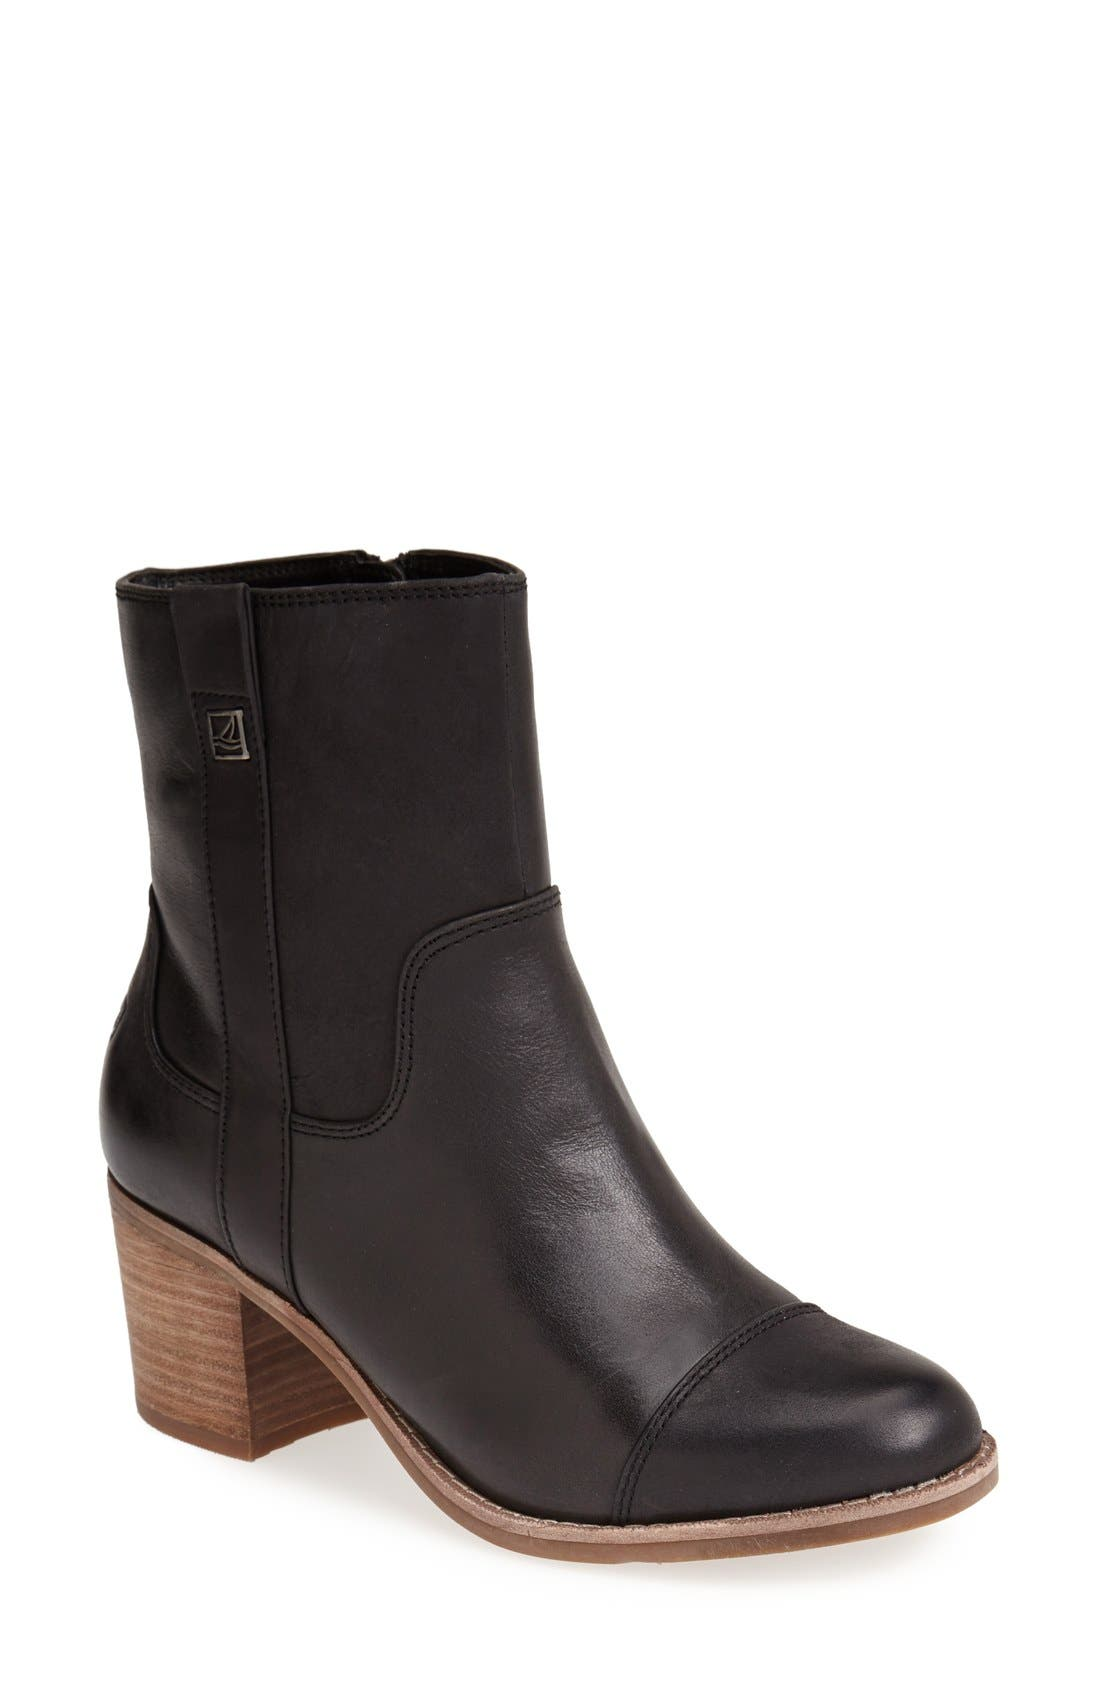 Main Image - Sperry Top-Sider® 'Helena' Boot (Women)